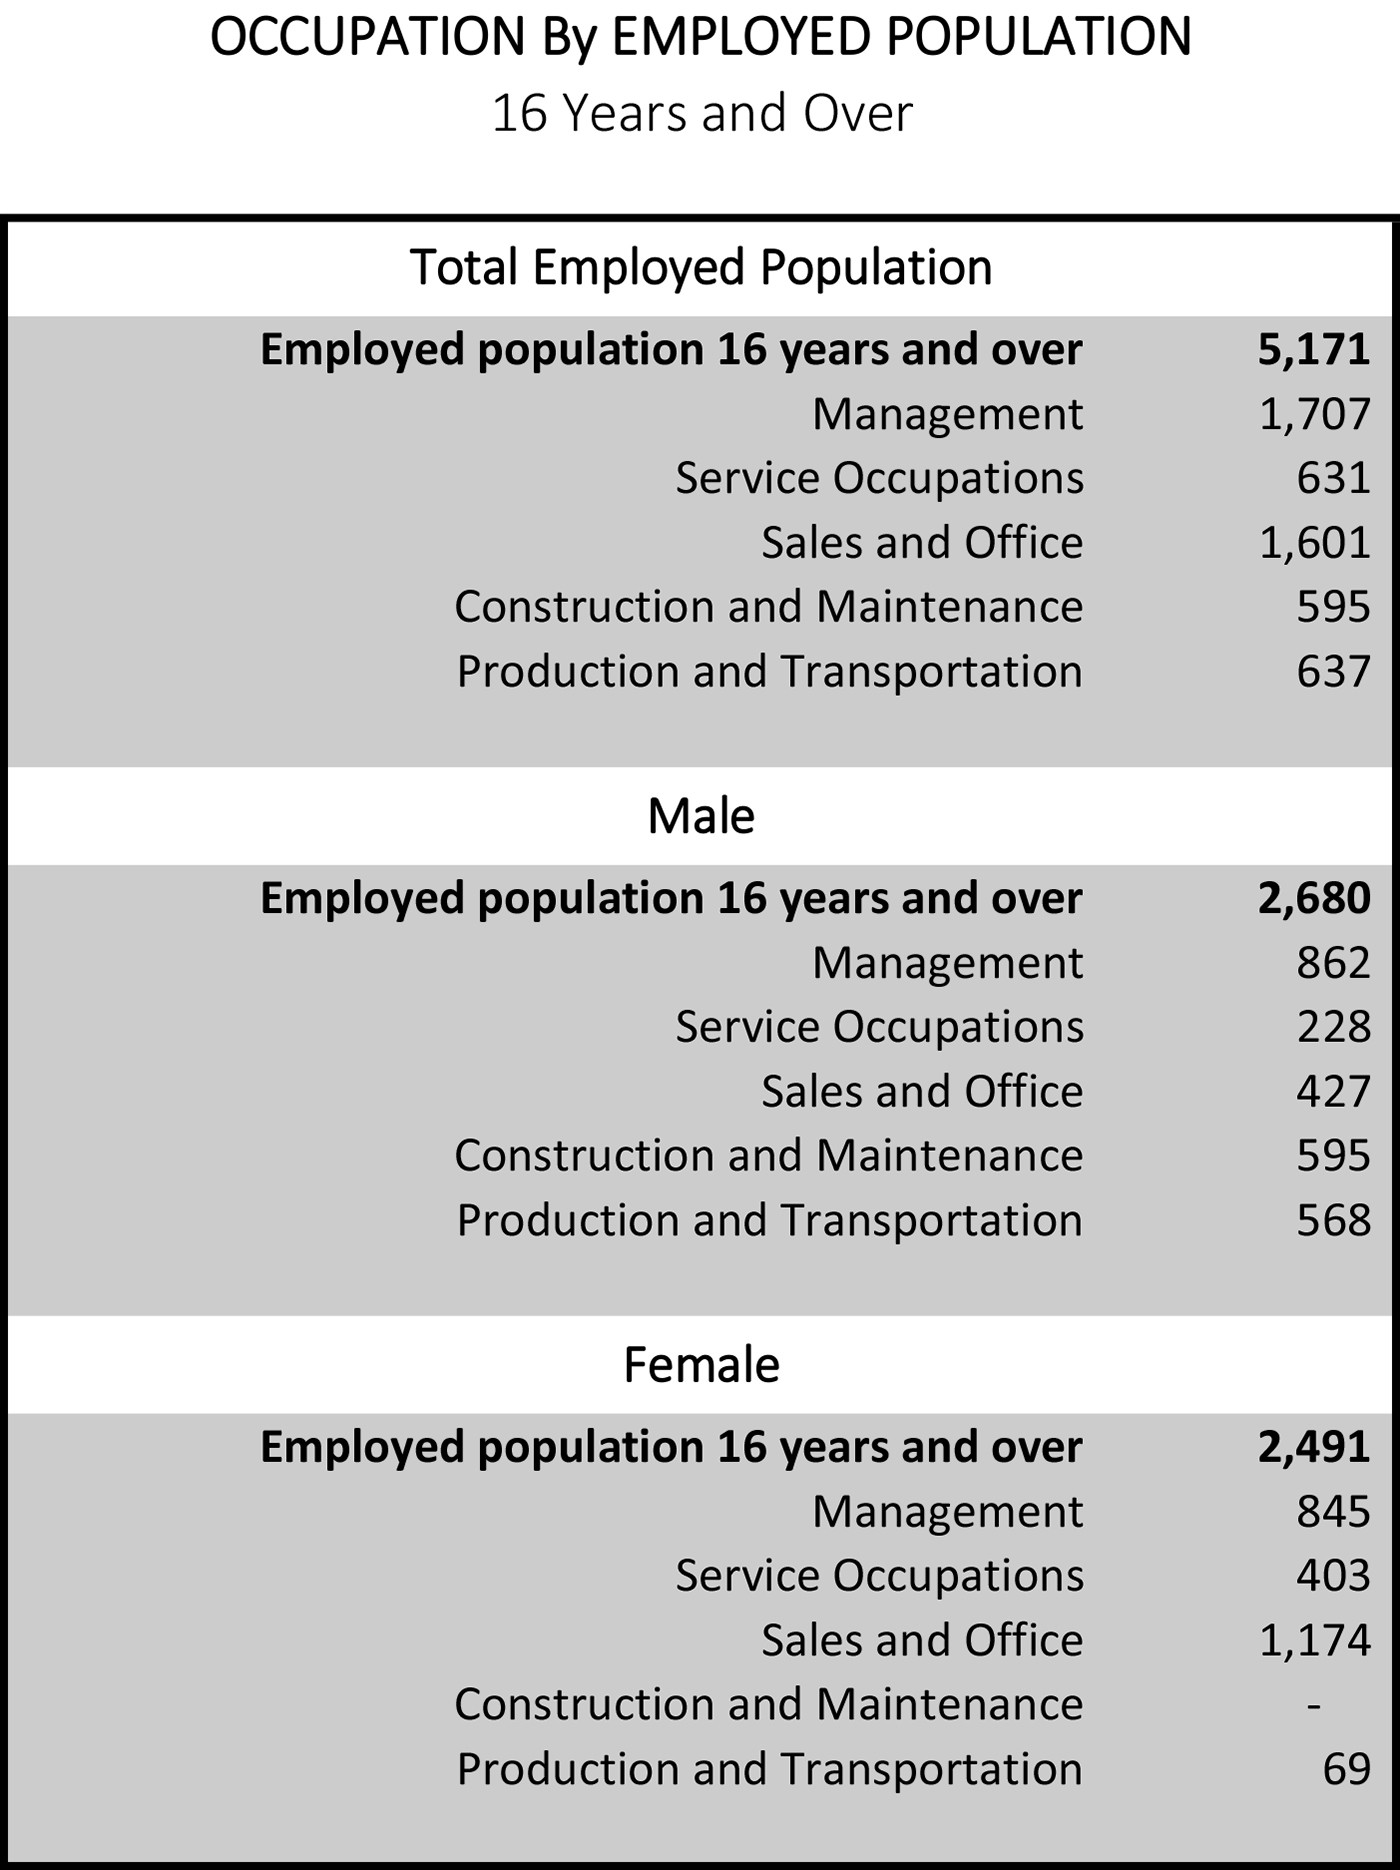 Leeds Alabama Occupation by Employed Population 16 years and over